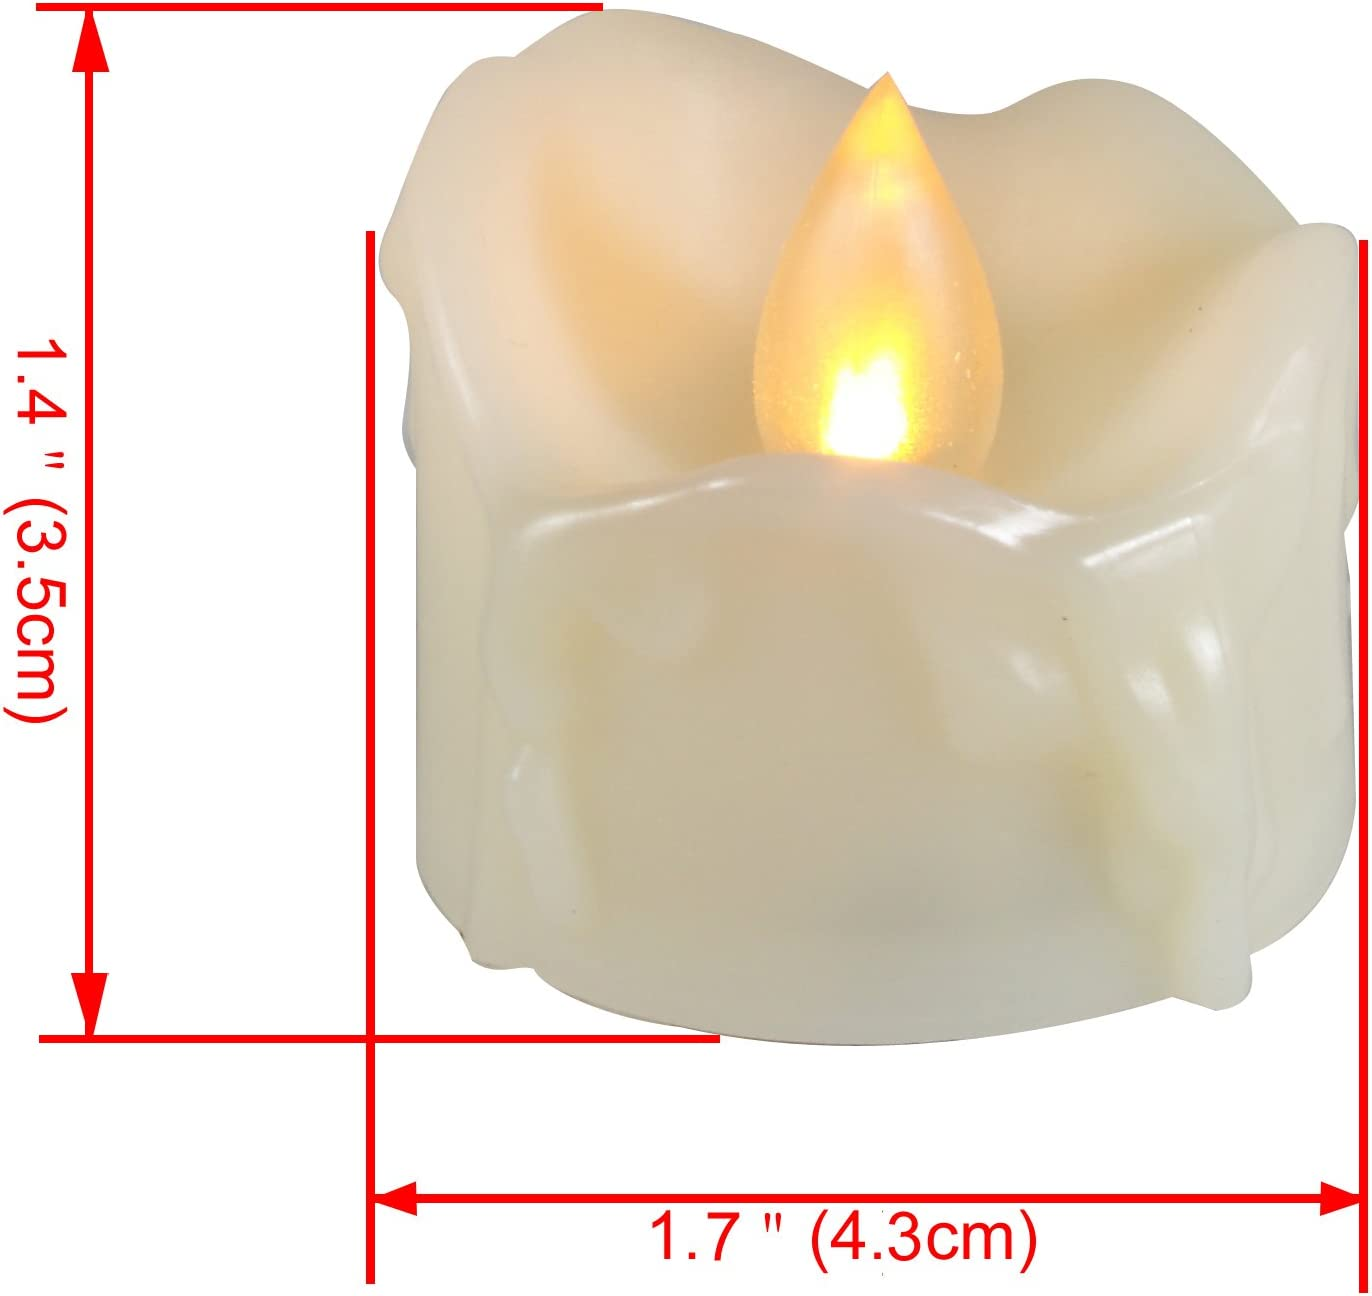 Battery operated Tealights Candle Choice Set of 24 Flameless Candles LED Tealights Long Battery Life 120+ Hours Battery Included Flameless Tealights